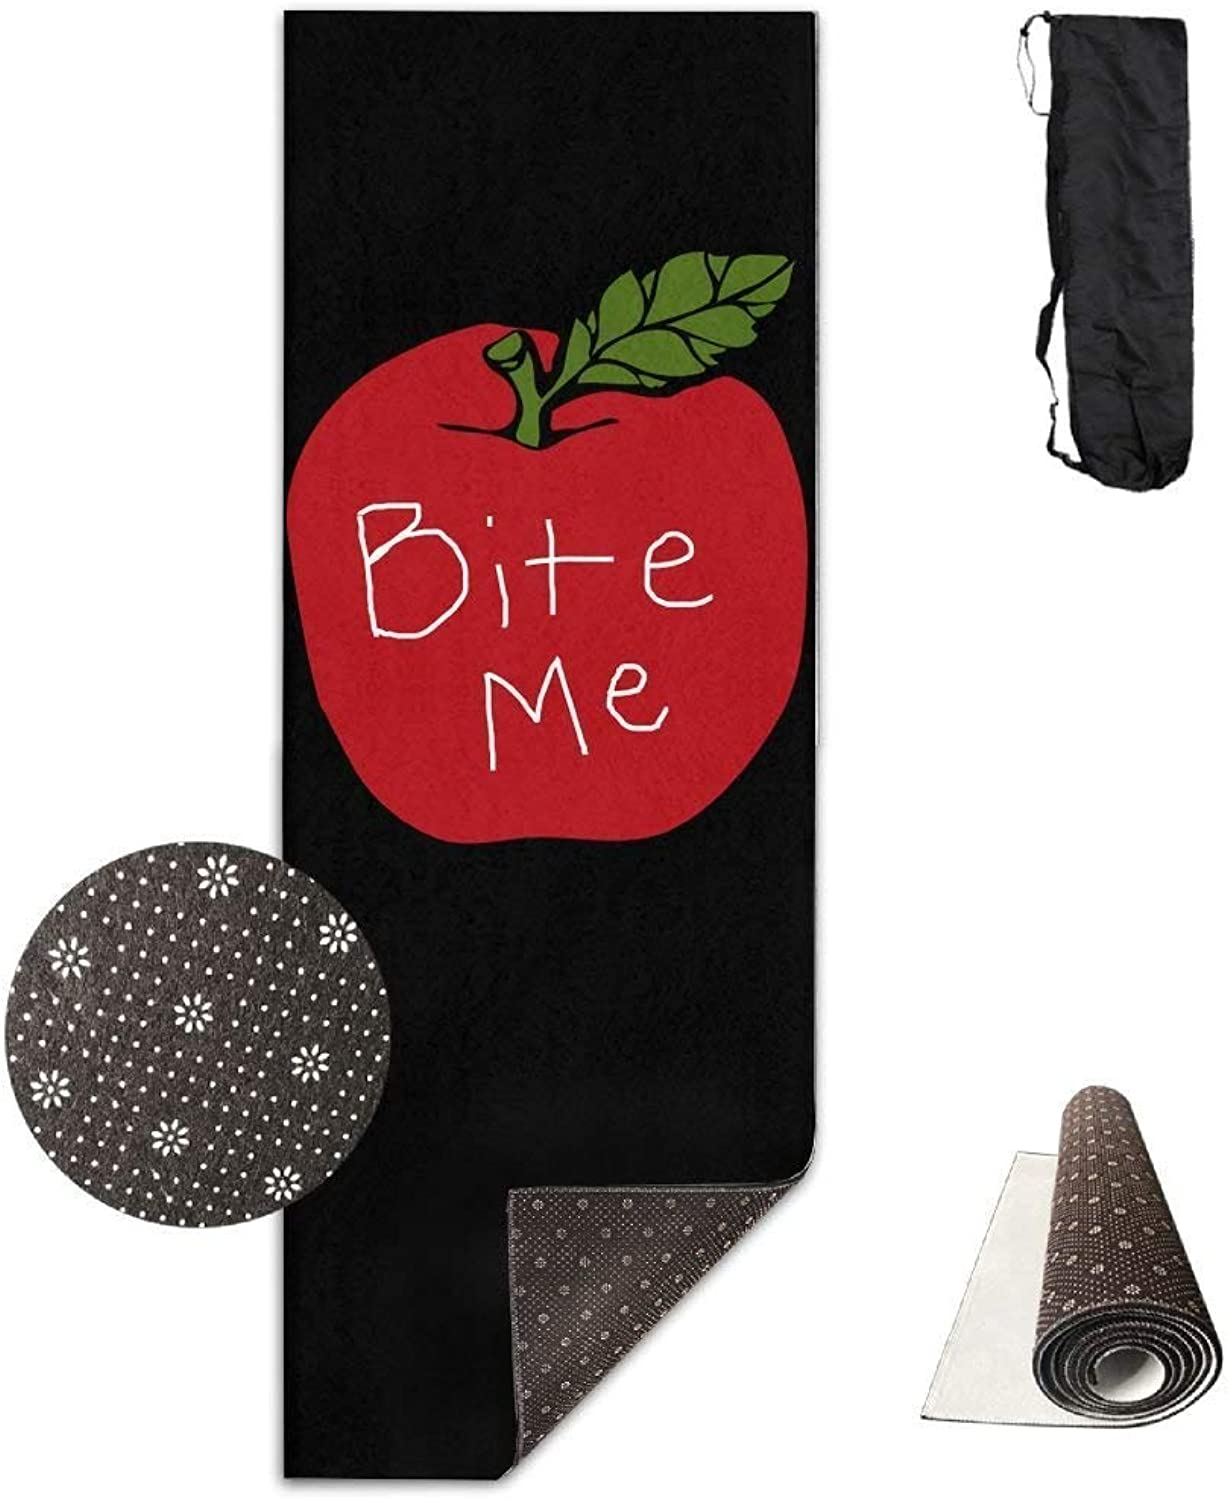 Yoga Mat Non Slip Apple Bite Me Printed 24 X 71 Inches Premium for Fitness Exercise Pilates with Carrying Strap